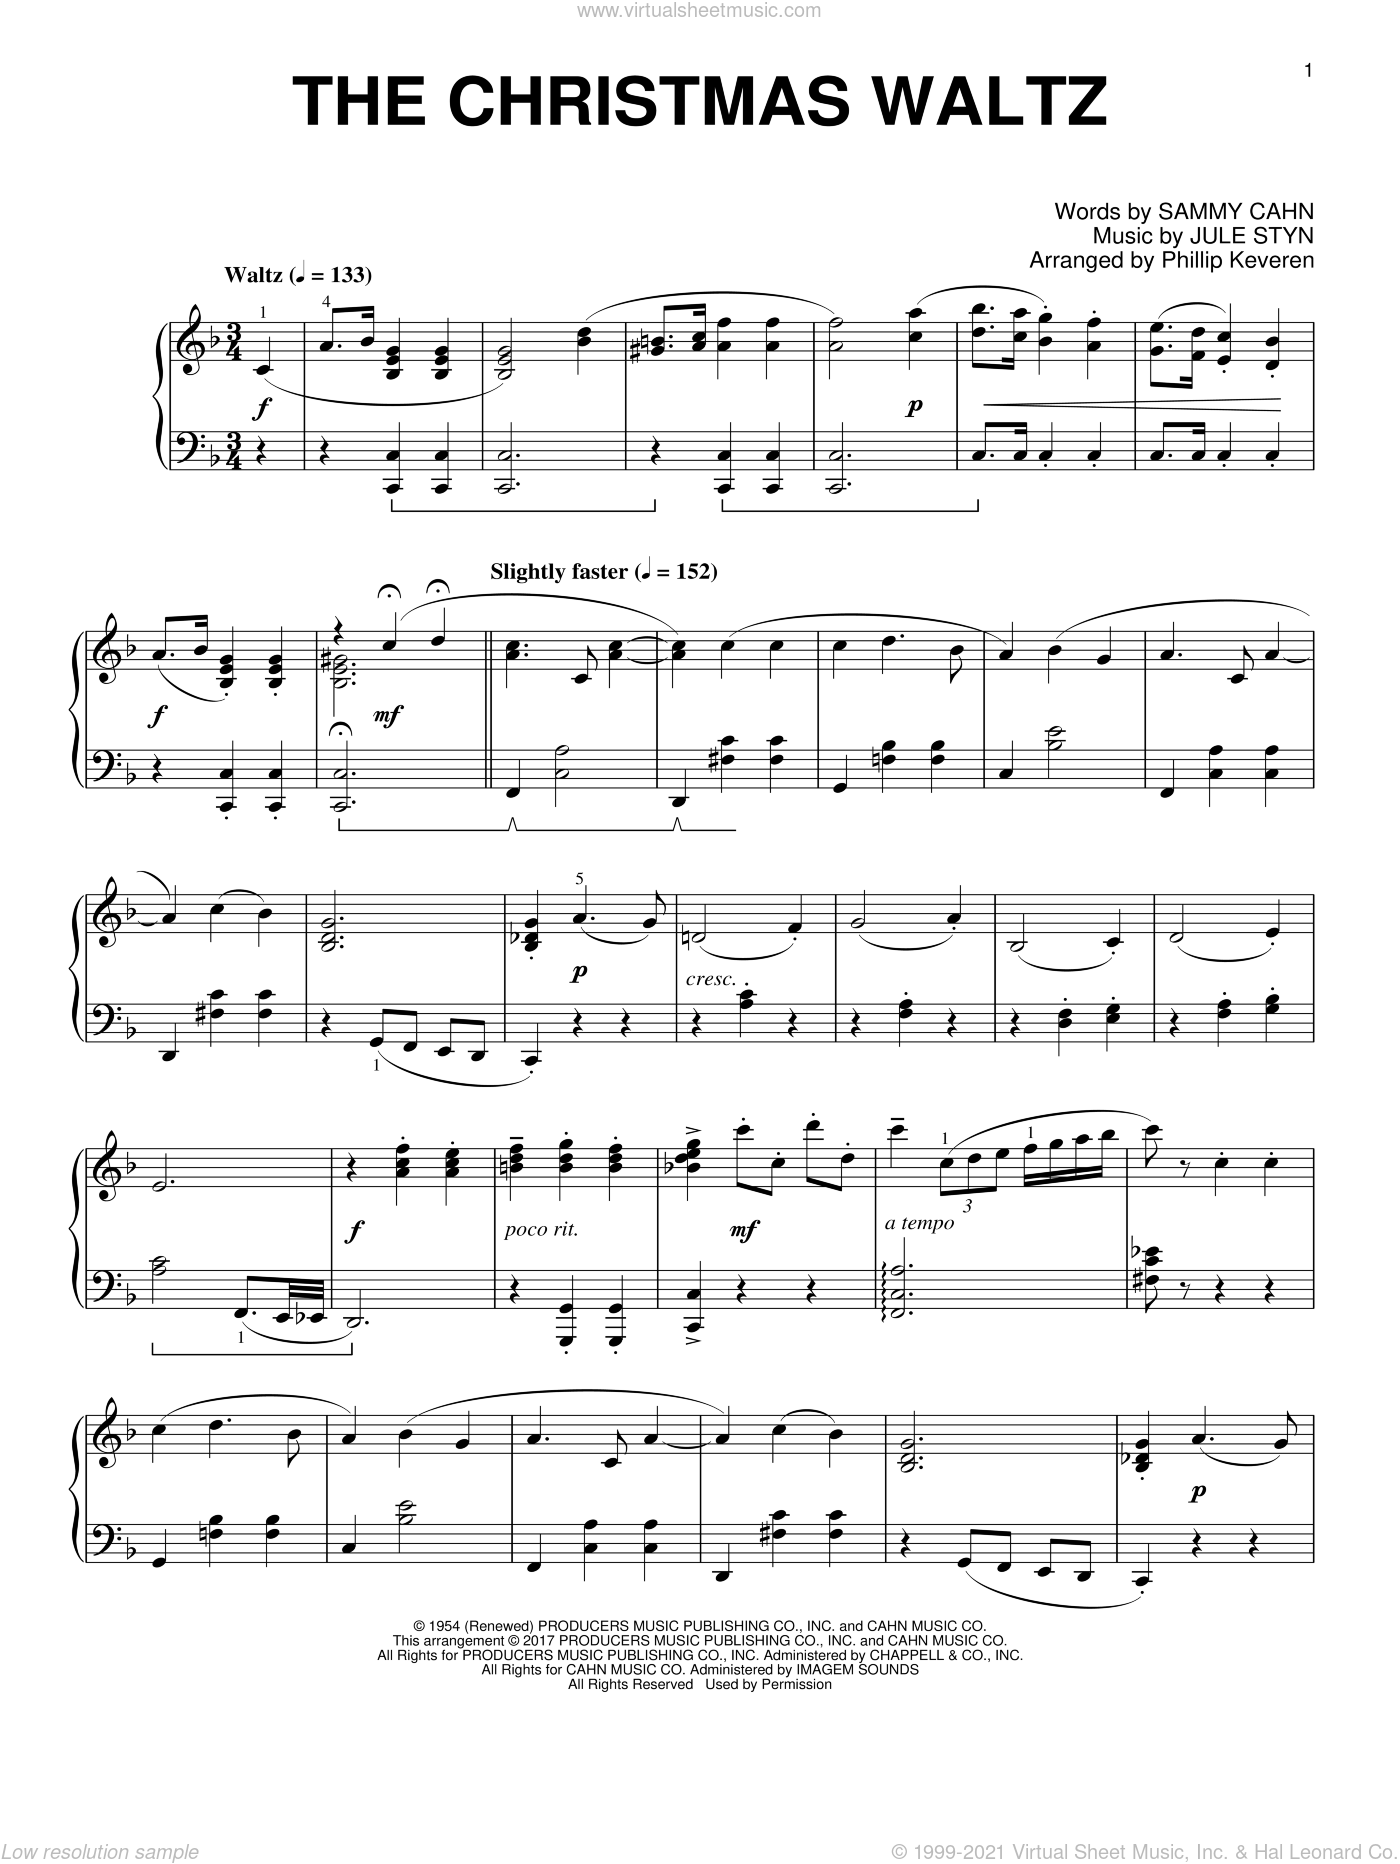 The Christmas Waltz [Classical version] (arr. Phillip Keveren) sheet music for piano solo by Sammy Cahn, Phillip Keveren and Jule Styne, intermediate skill level